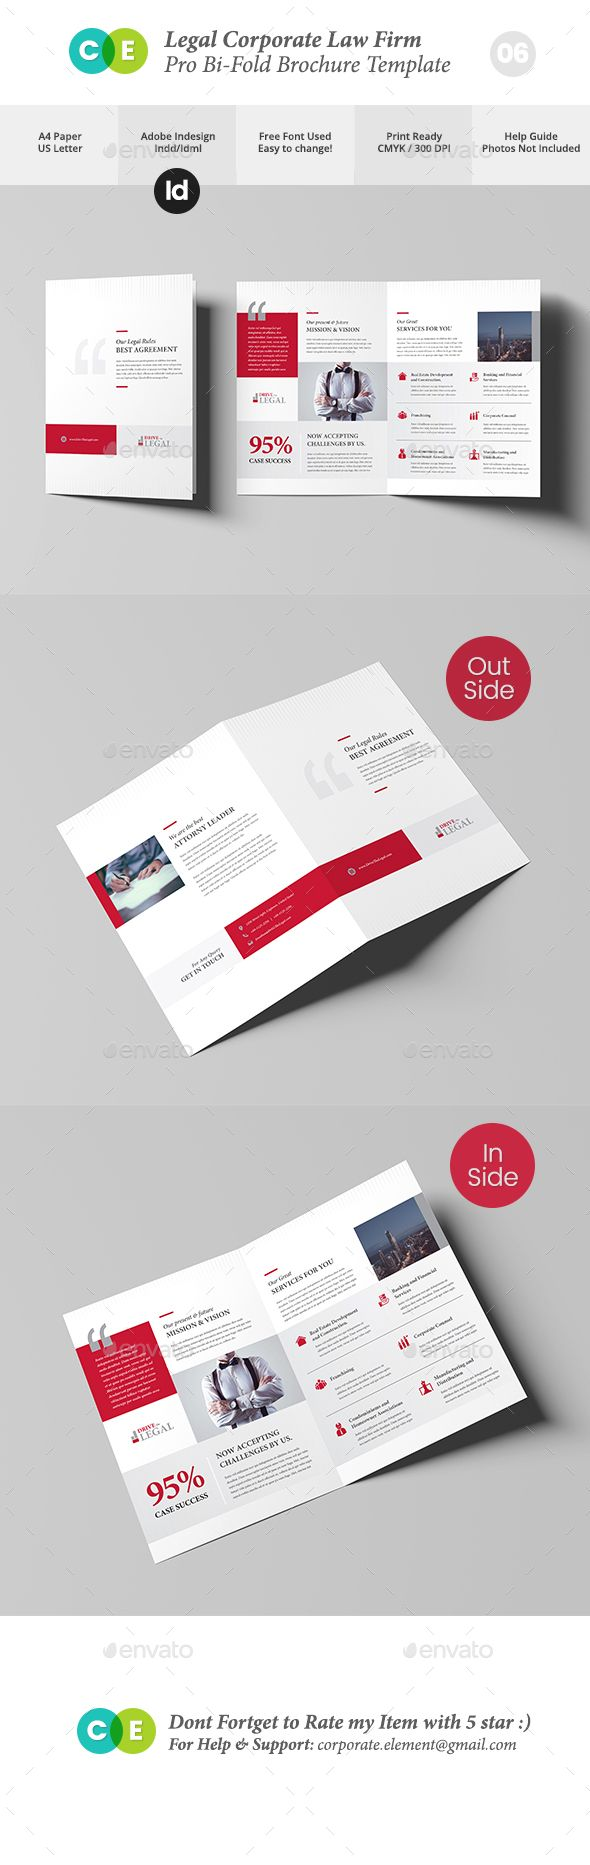 Legal Corporate Law Firm Business BiFold Brochure V  Corporate